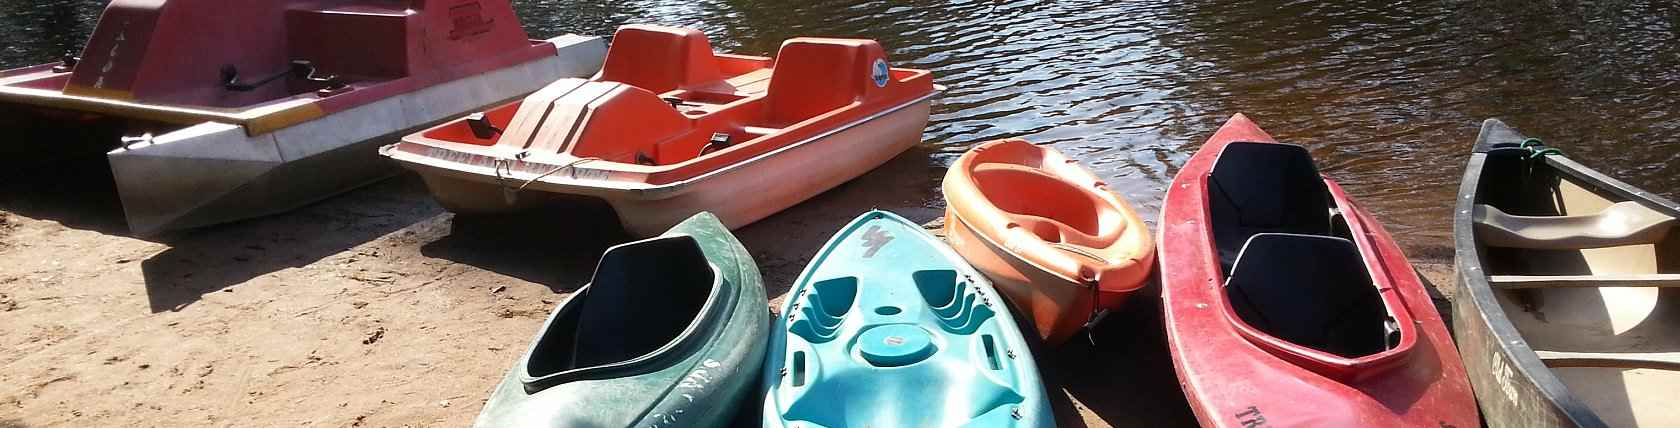 Free Use of Kayaks, Paddle Boats